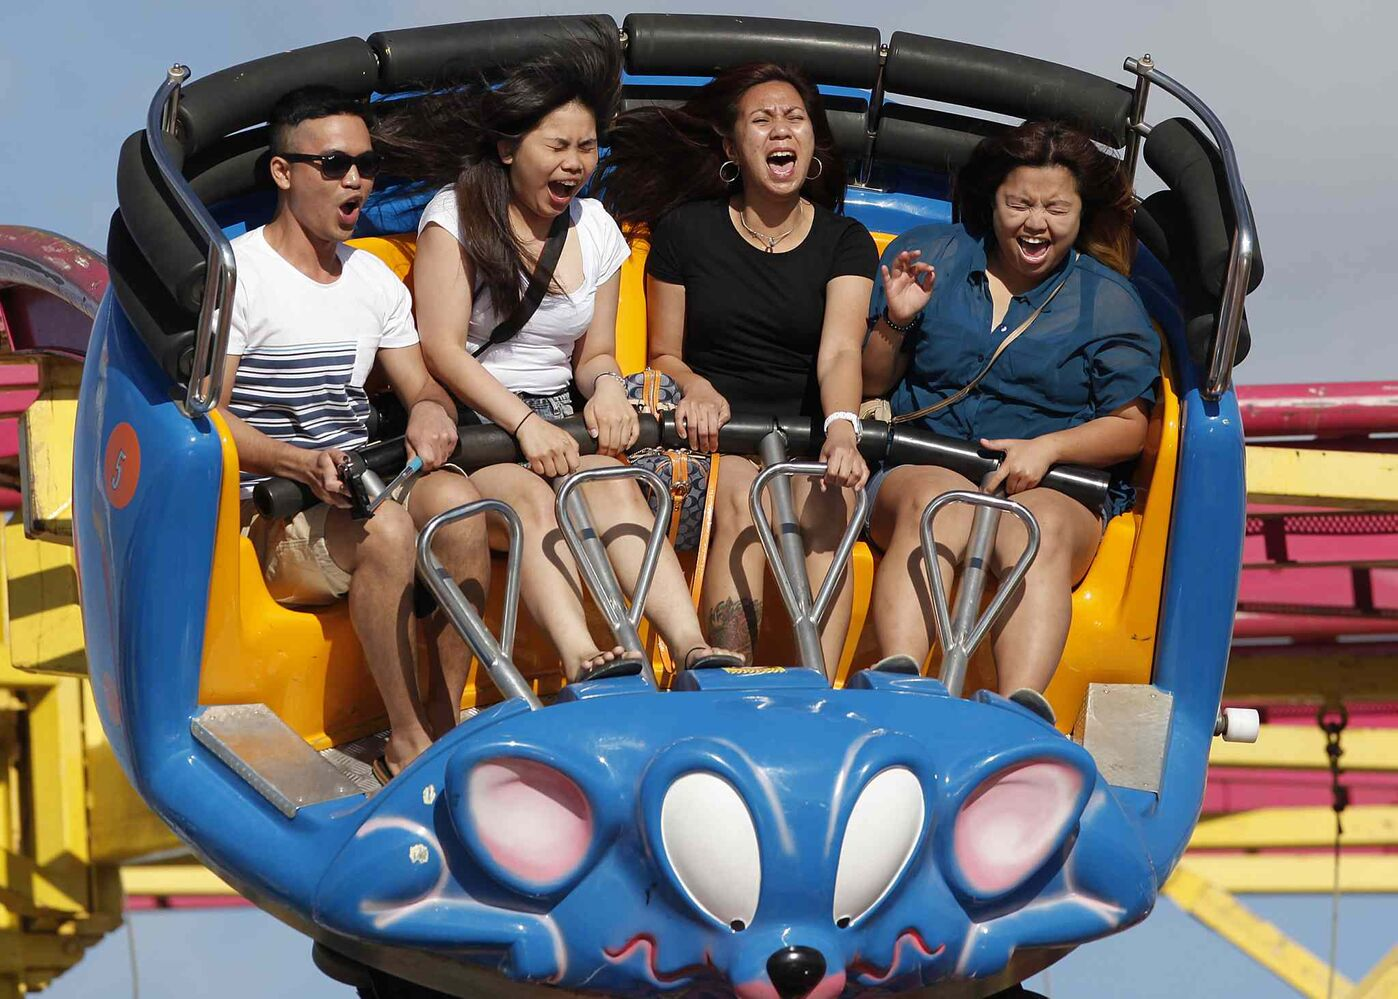 From left, Ace Martin Prieto, Norlyn Brual, Cynthia Berces and Naldine Reyeson take a ride on the Crazy Mouse at The Red River Ex on Tuesday. (John Woods / Winnipeg Free Press)